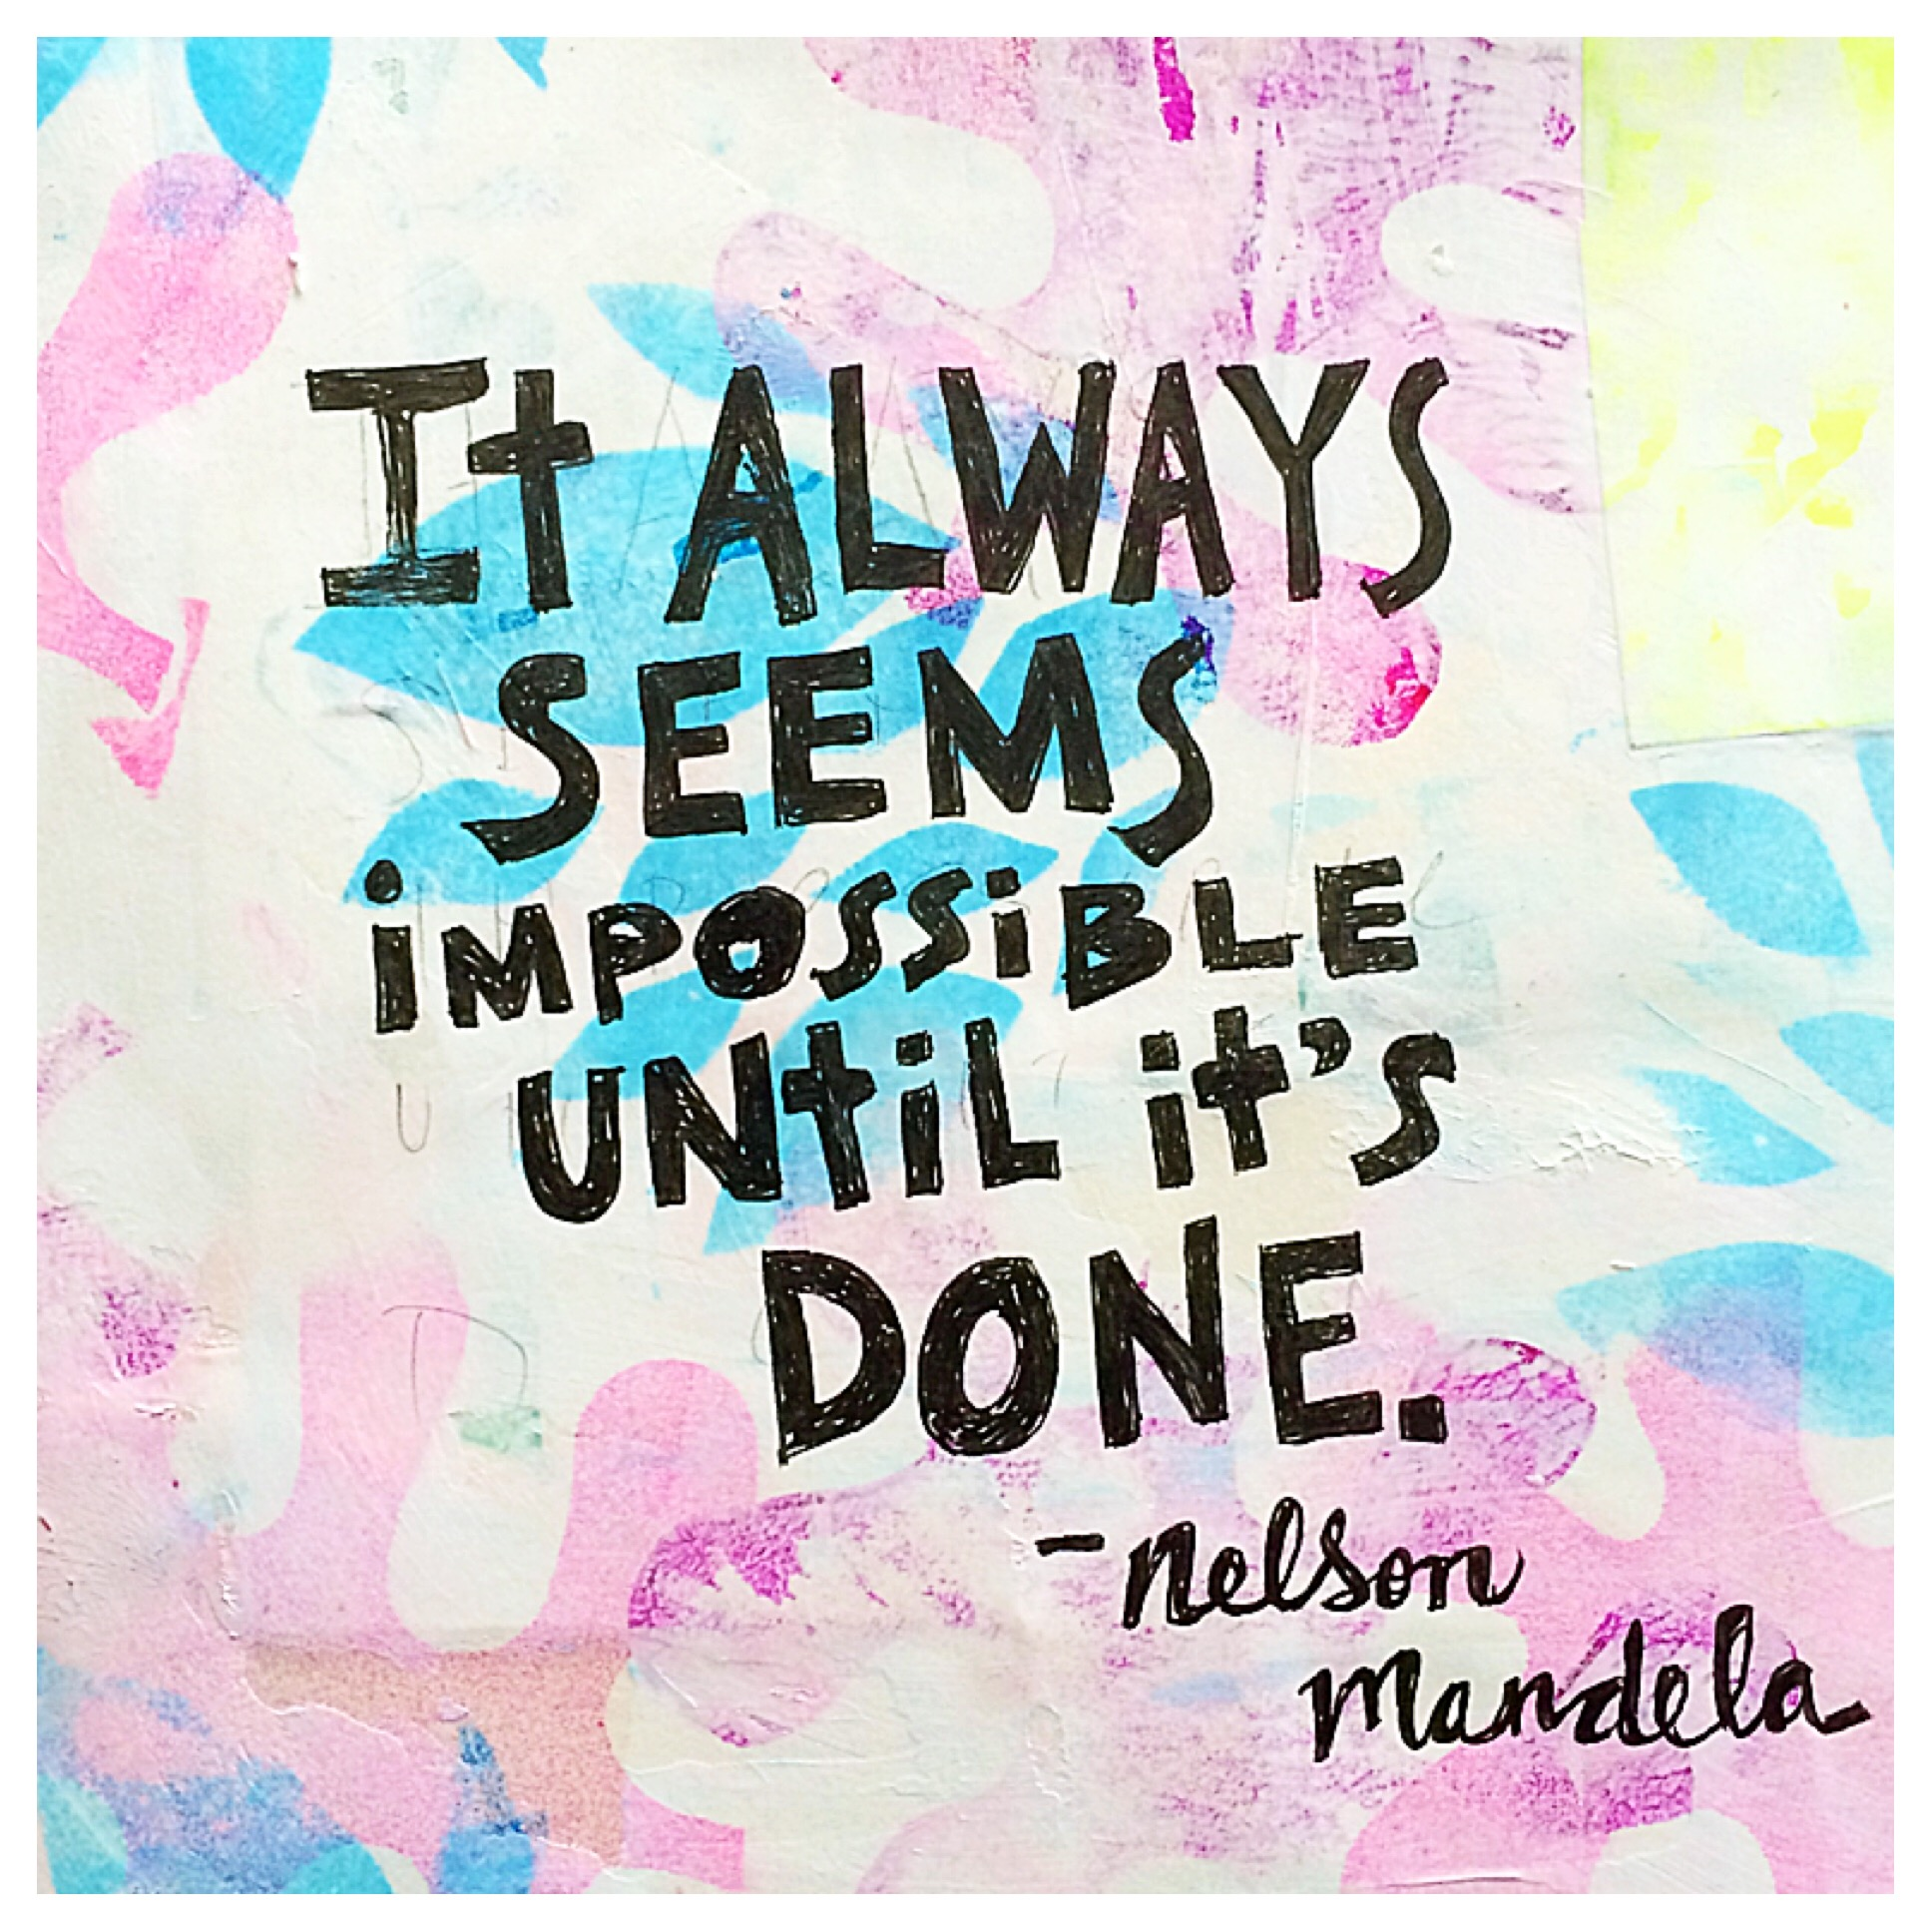 One of my favorite quotes from Nelson Mandela